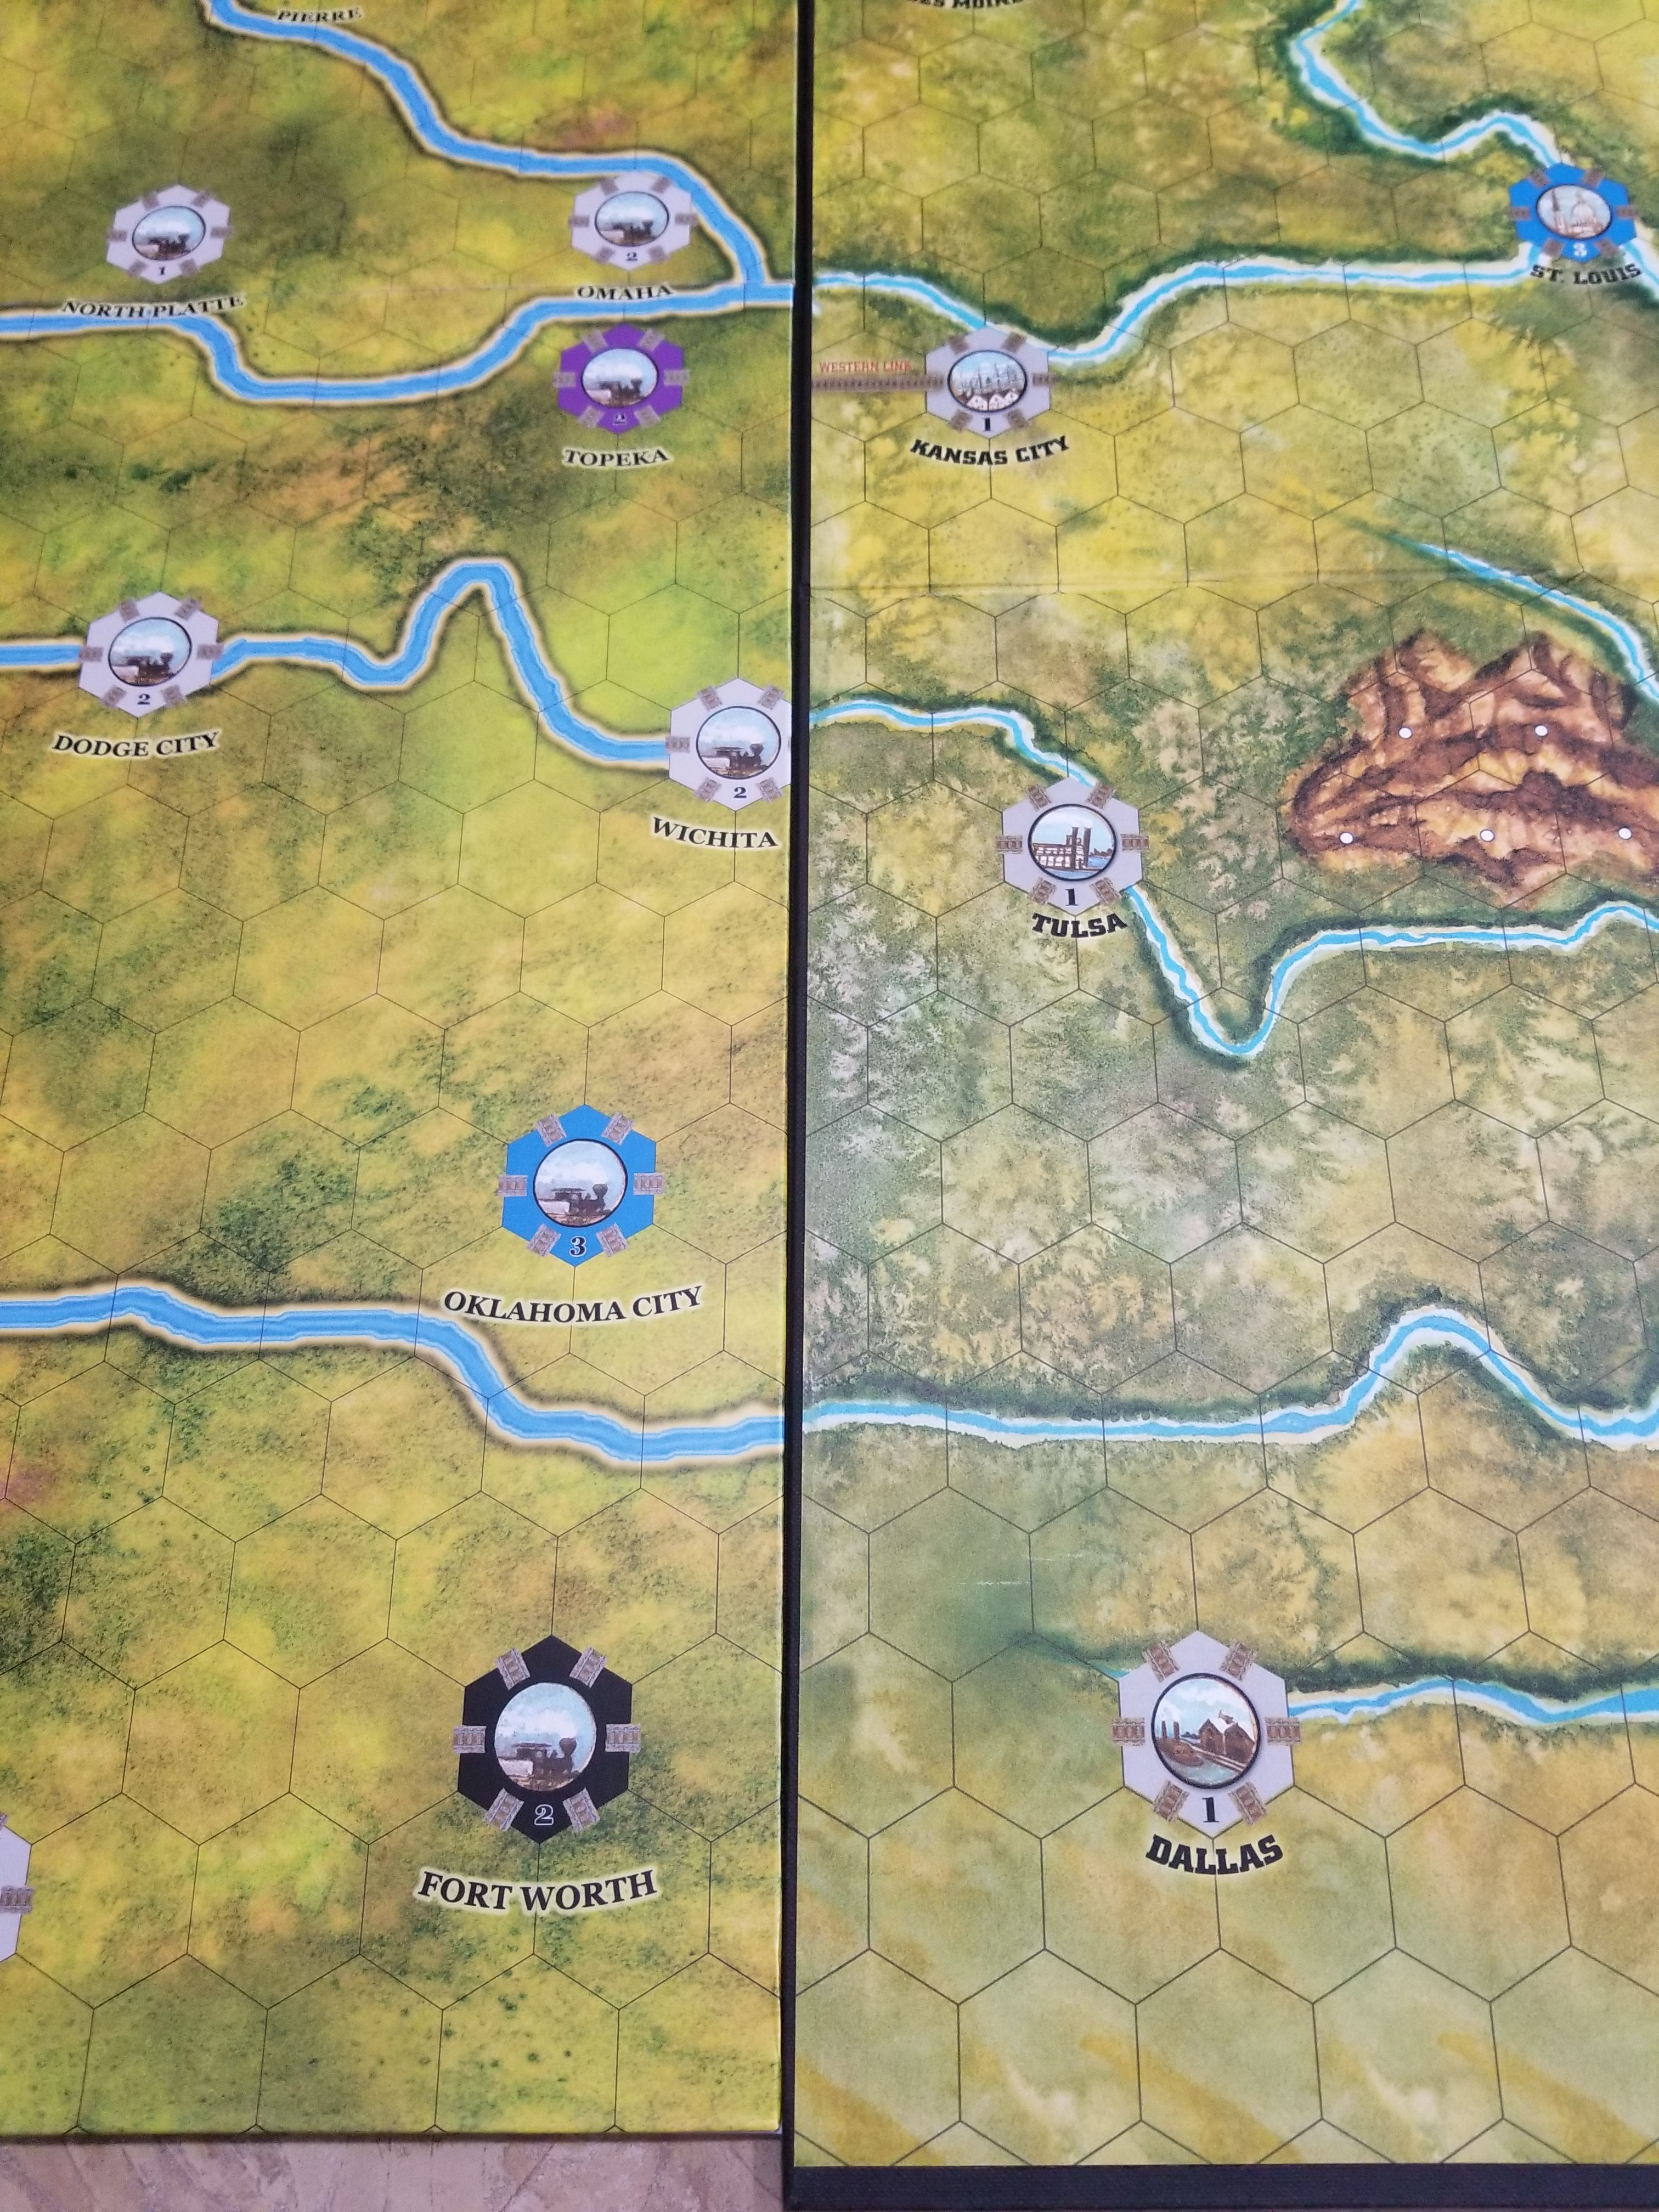 More disappointment with the 10th anniversary edition continental now with the new boards each map has a black border causing a larger gap but even more so the art on the eastern board goes beyond the grid and the gumiabroncs Images